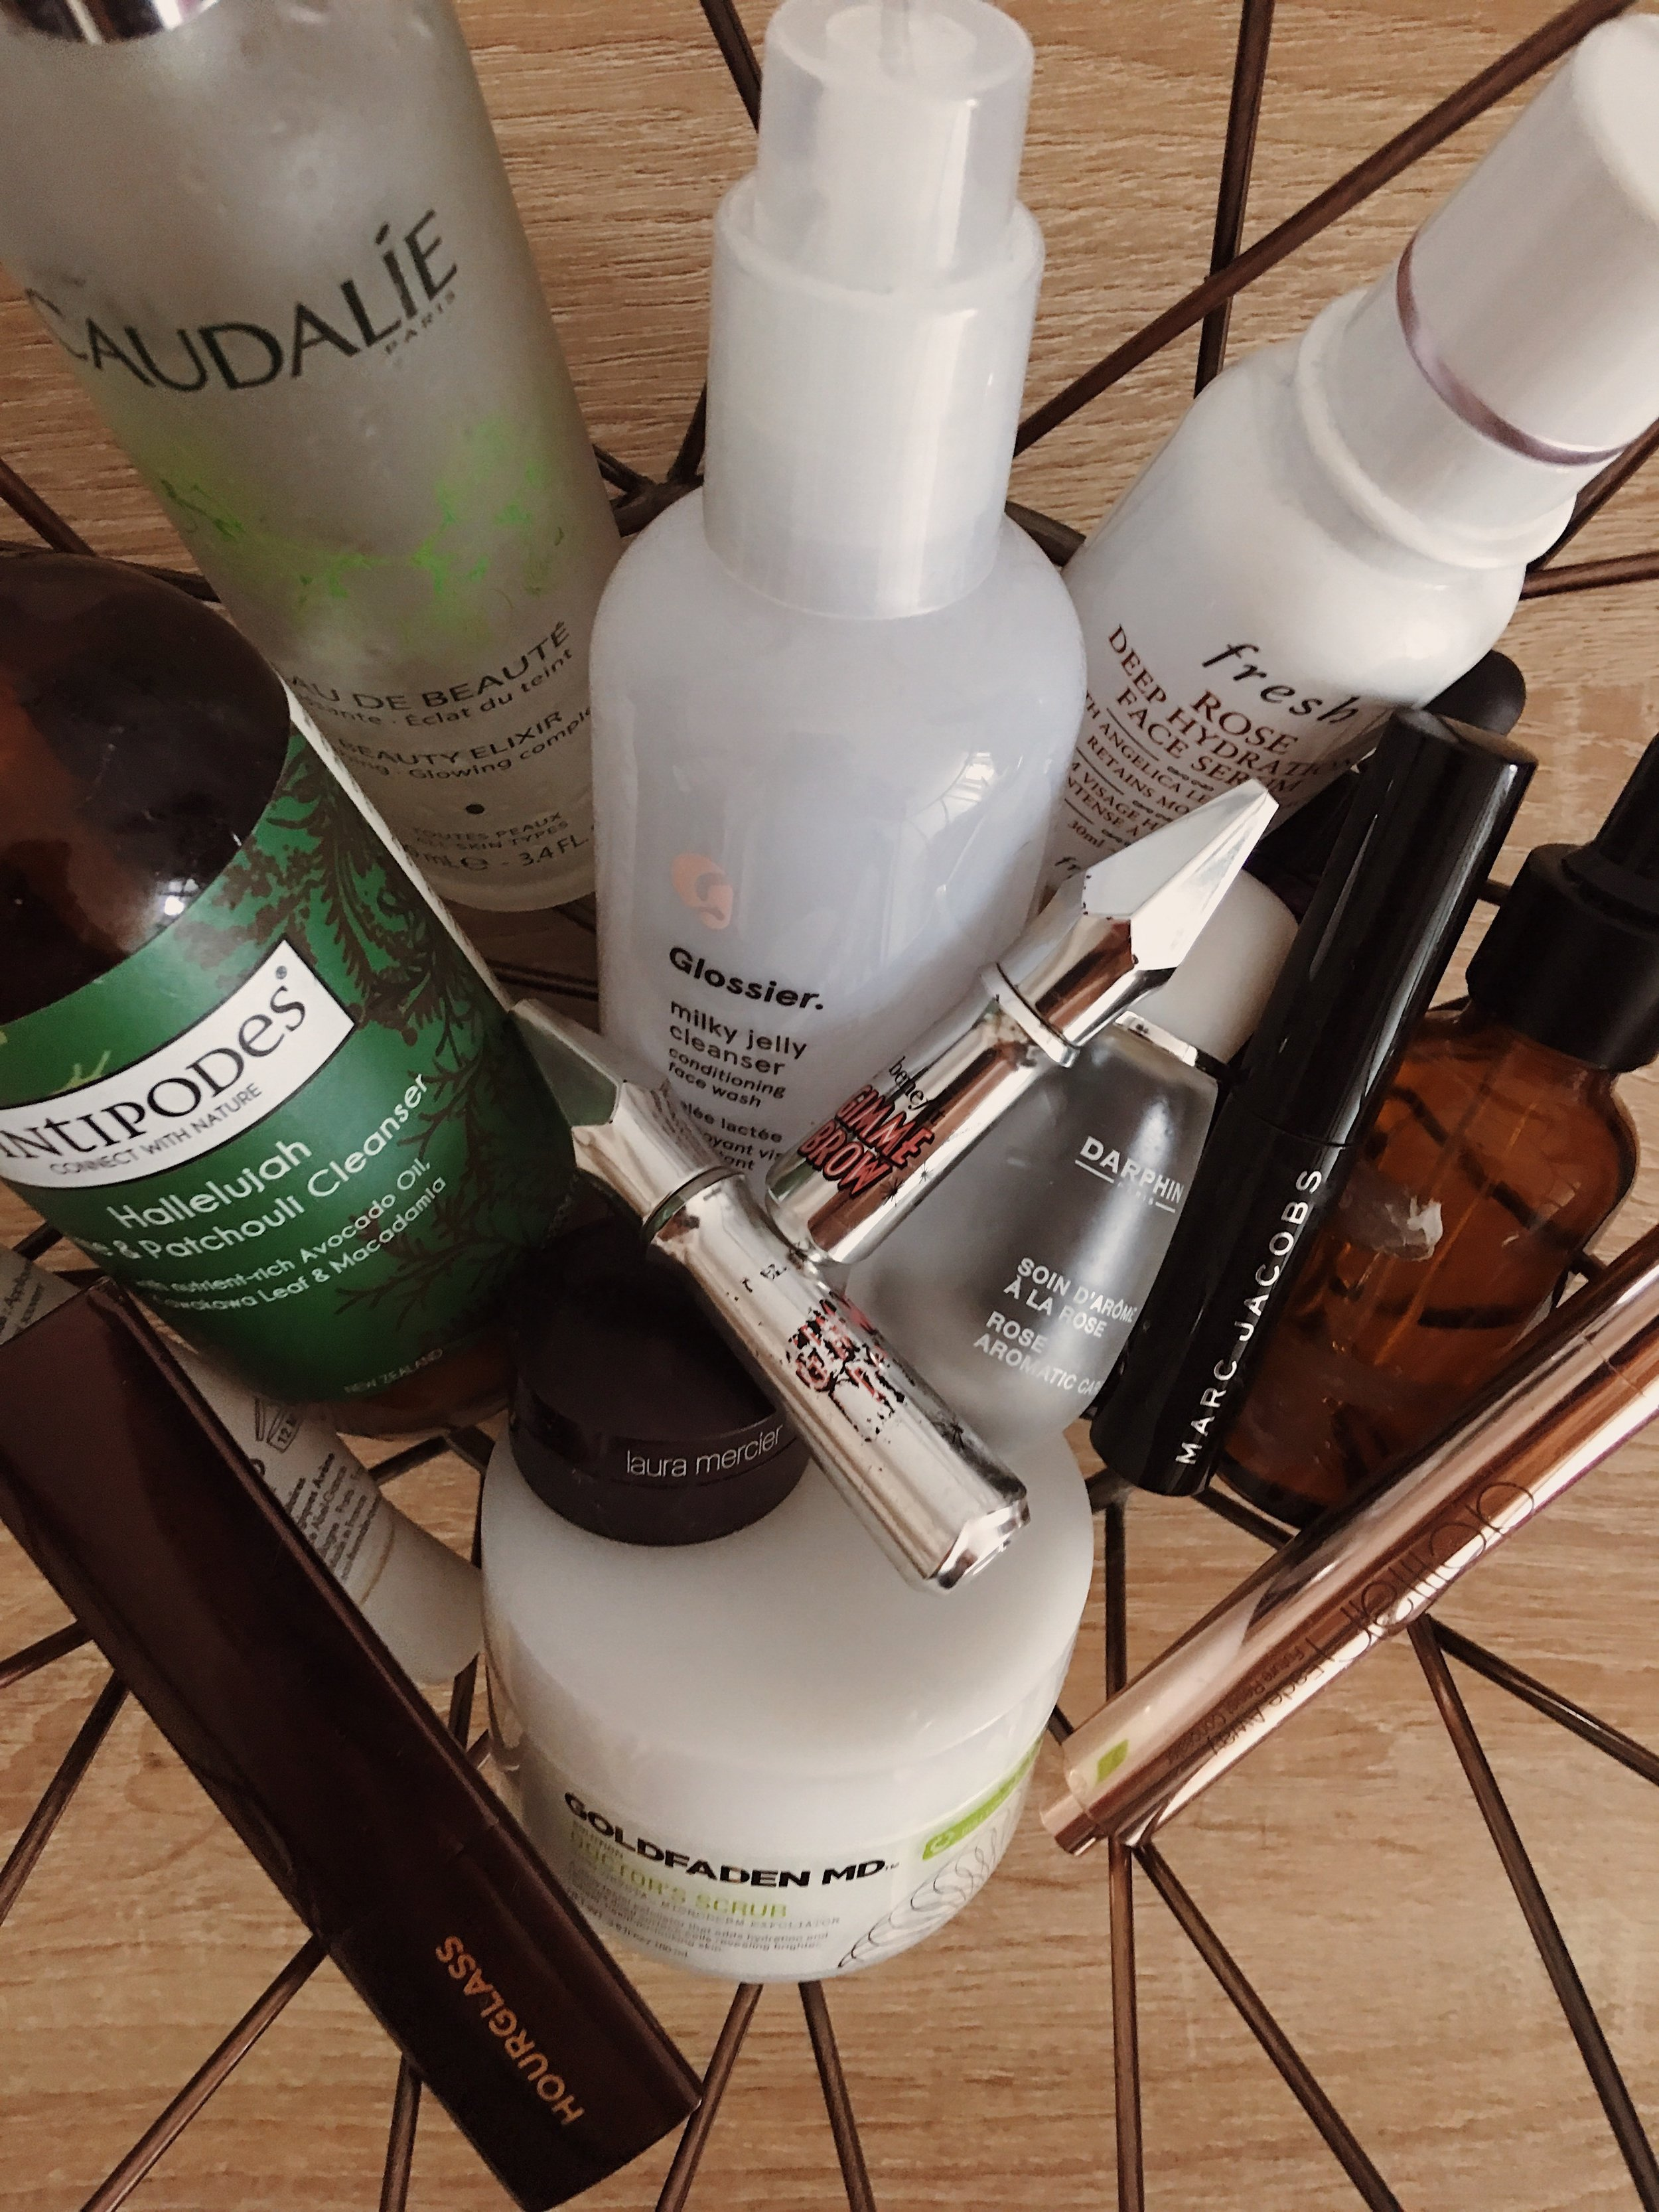 AMOUR OPHELIA - PRODUCT EMPTIES